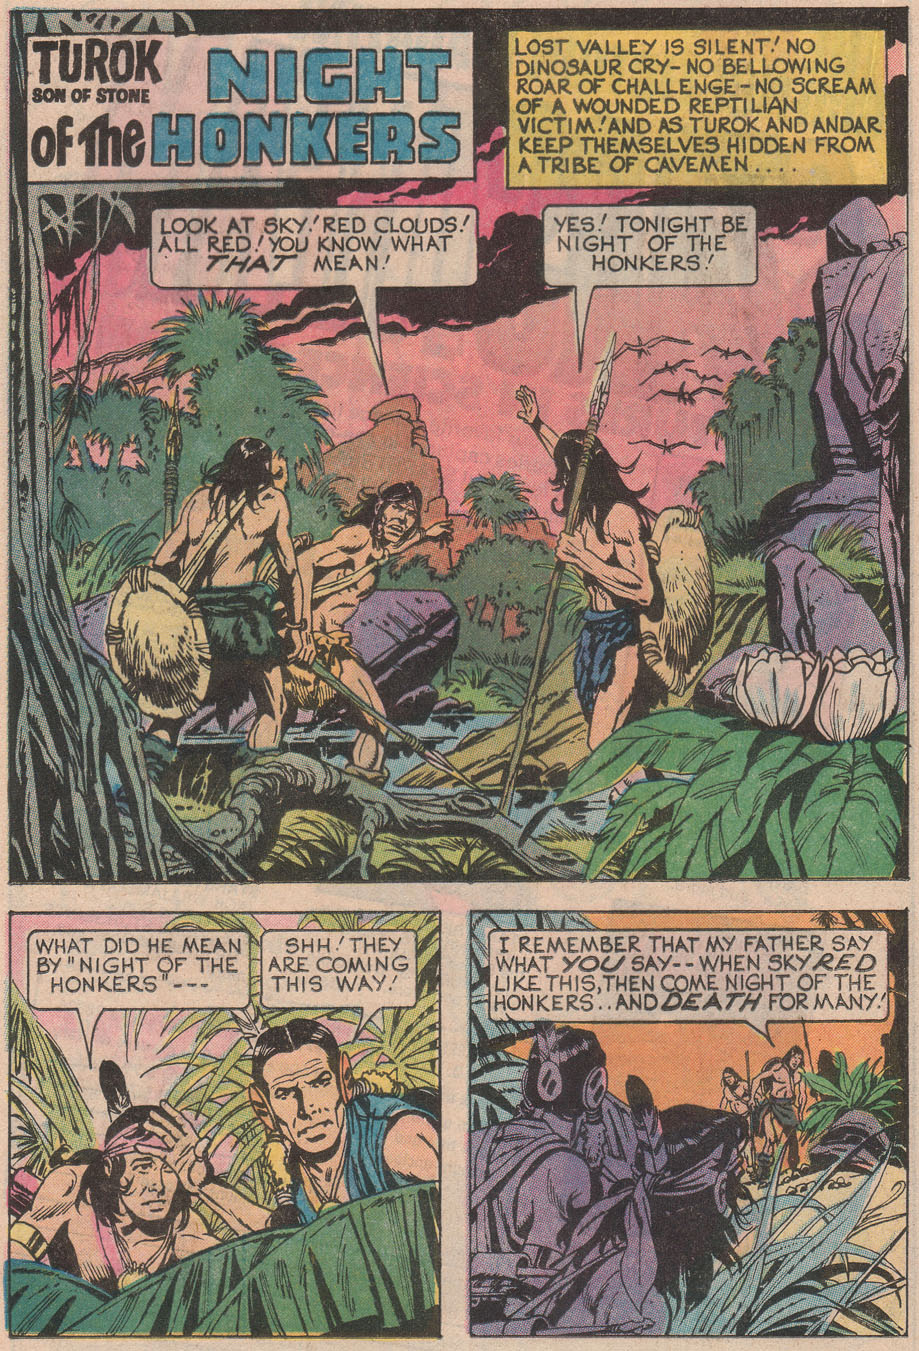 Read online Turok, Son of Stone comic -  Issue #113 - 20